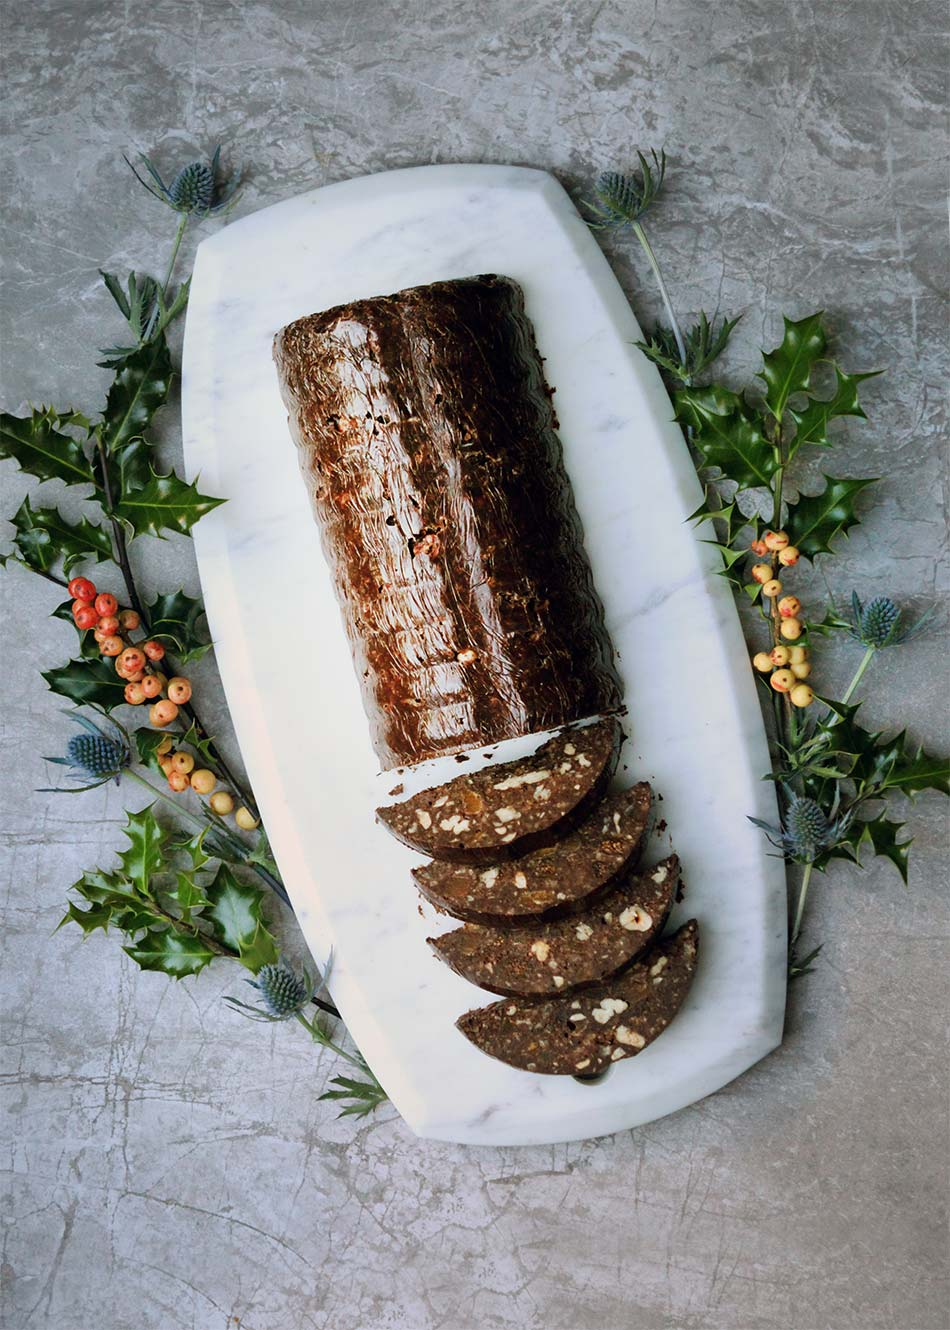 Chestnut and Chocolate Log, Amelia Freer